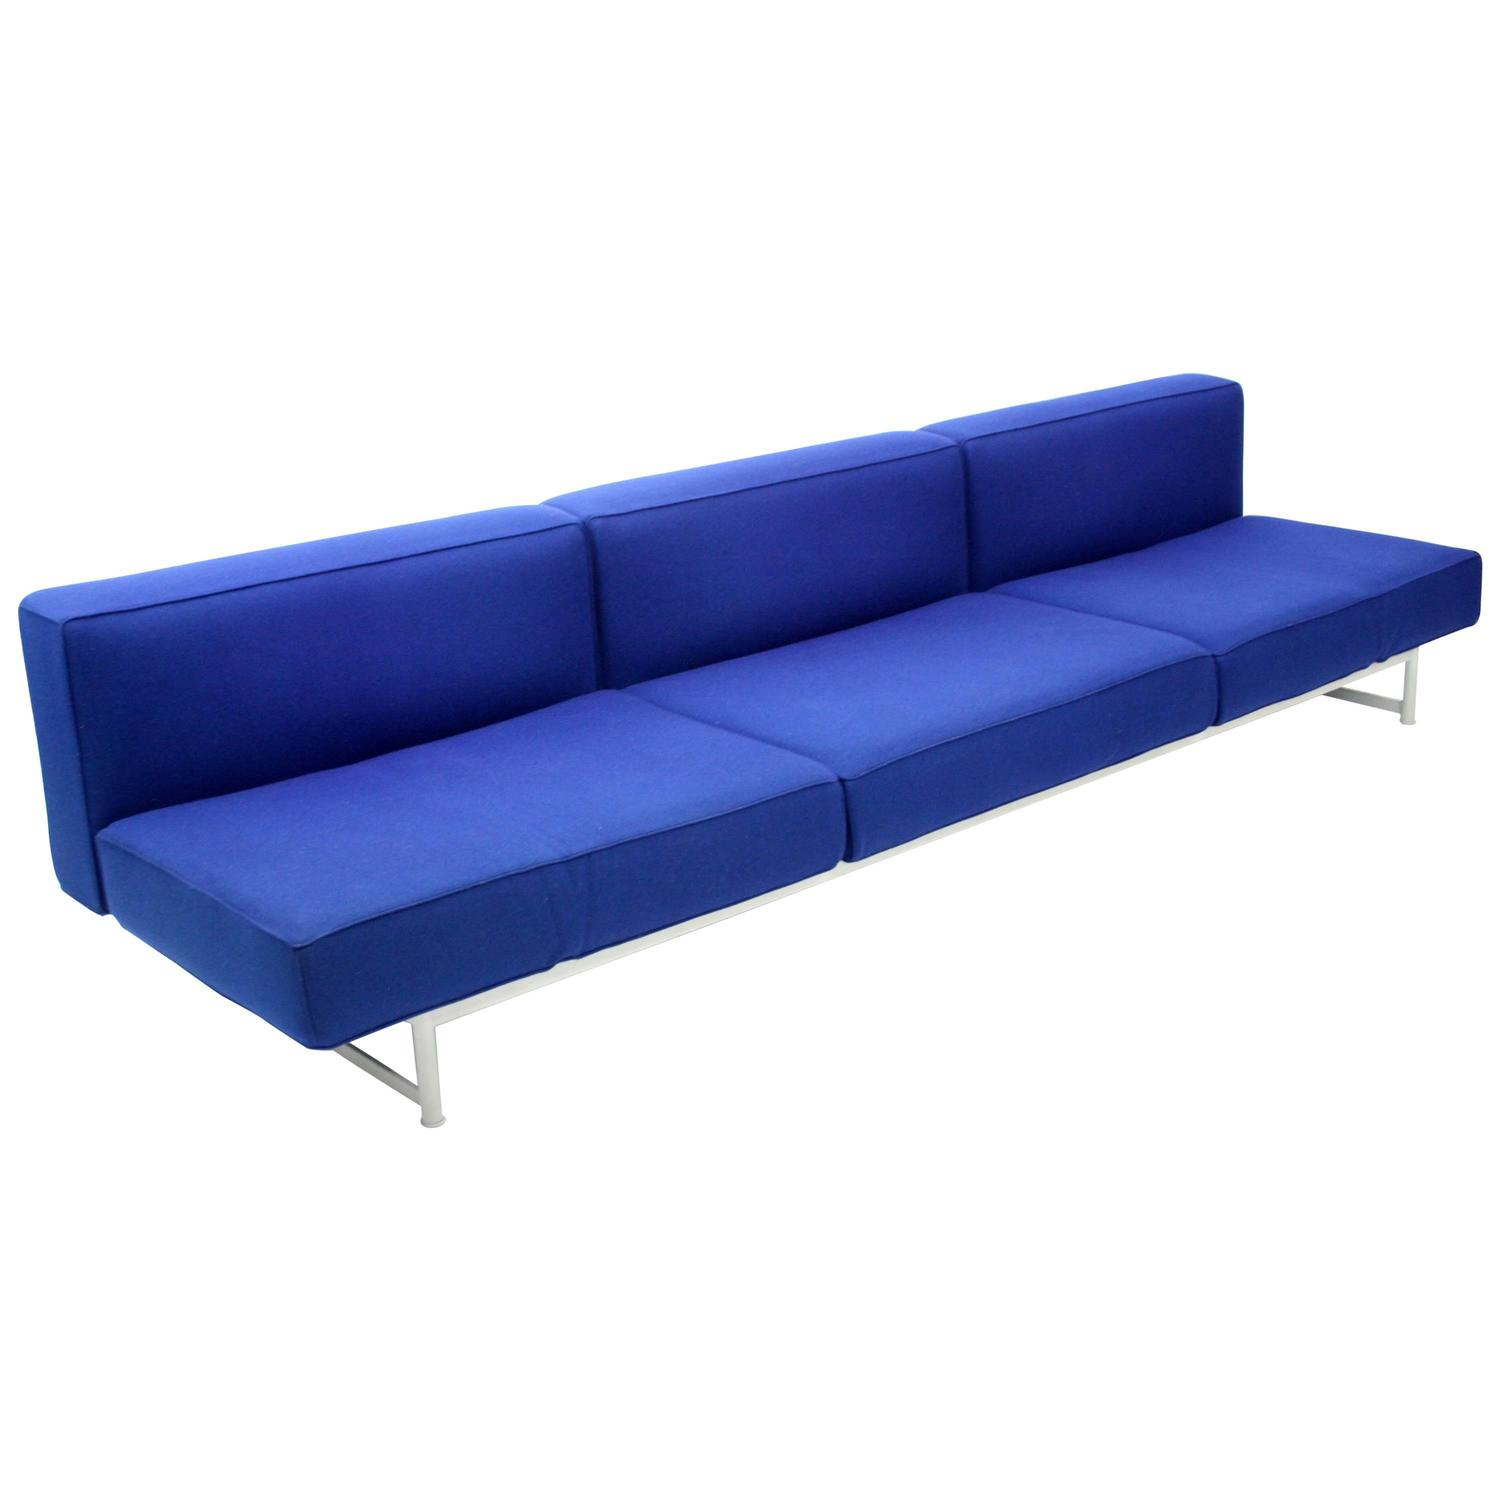 Piero lissoni reef sofa for cassina in blue felt for sale for Blue sofas for sale